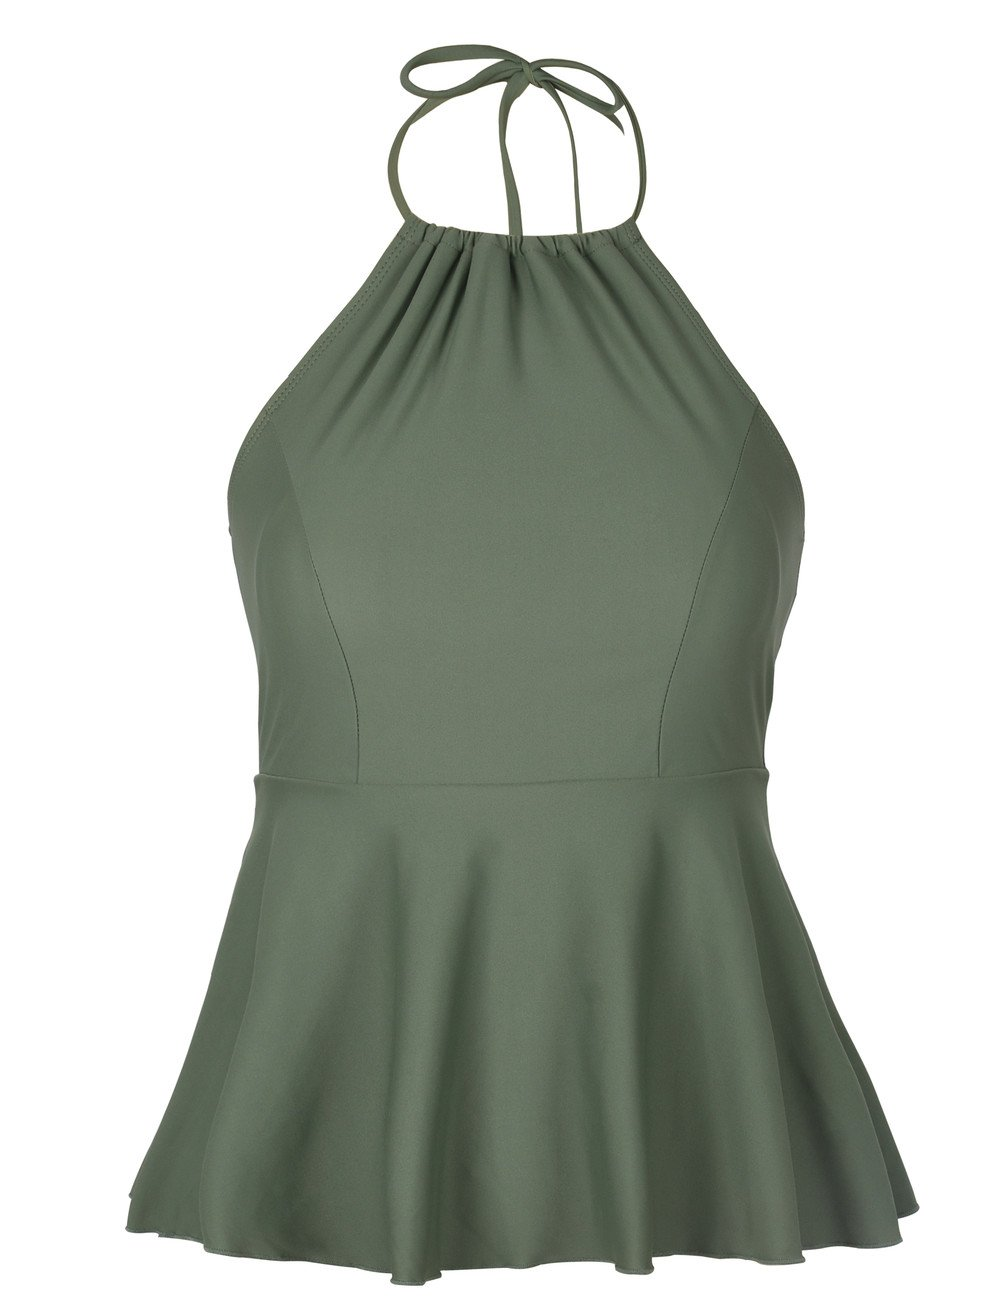 Hilor Women's High Neck Swimwear Halter Swimsuit Ruffle Hemline Tankinis Tops Army Green 10